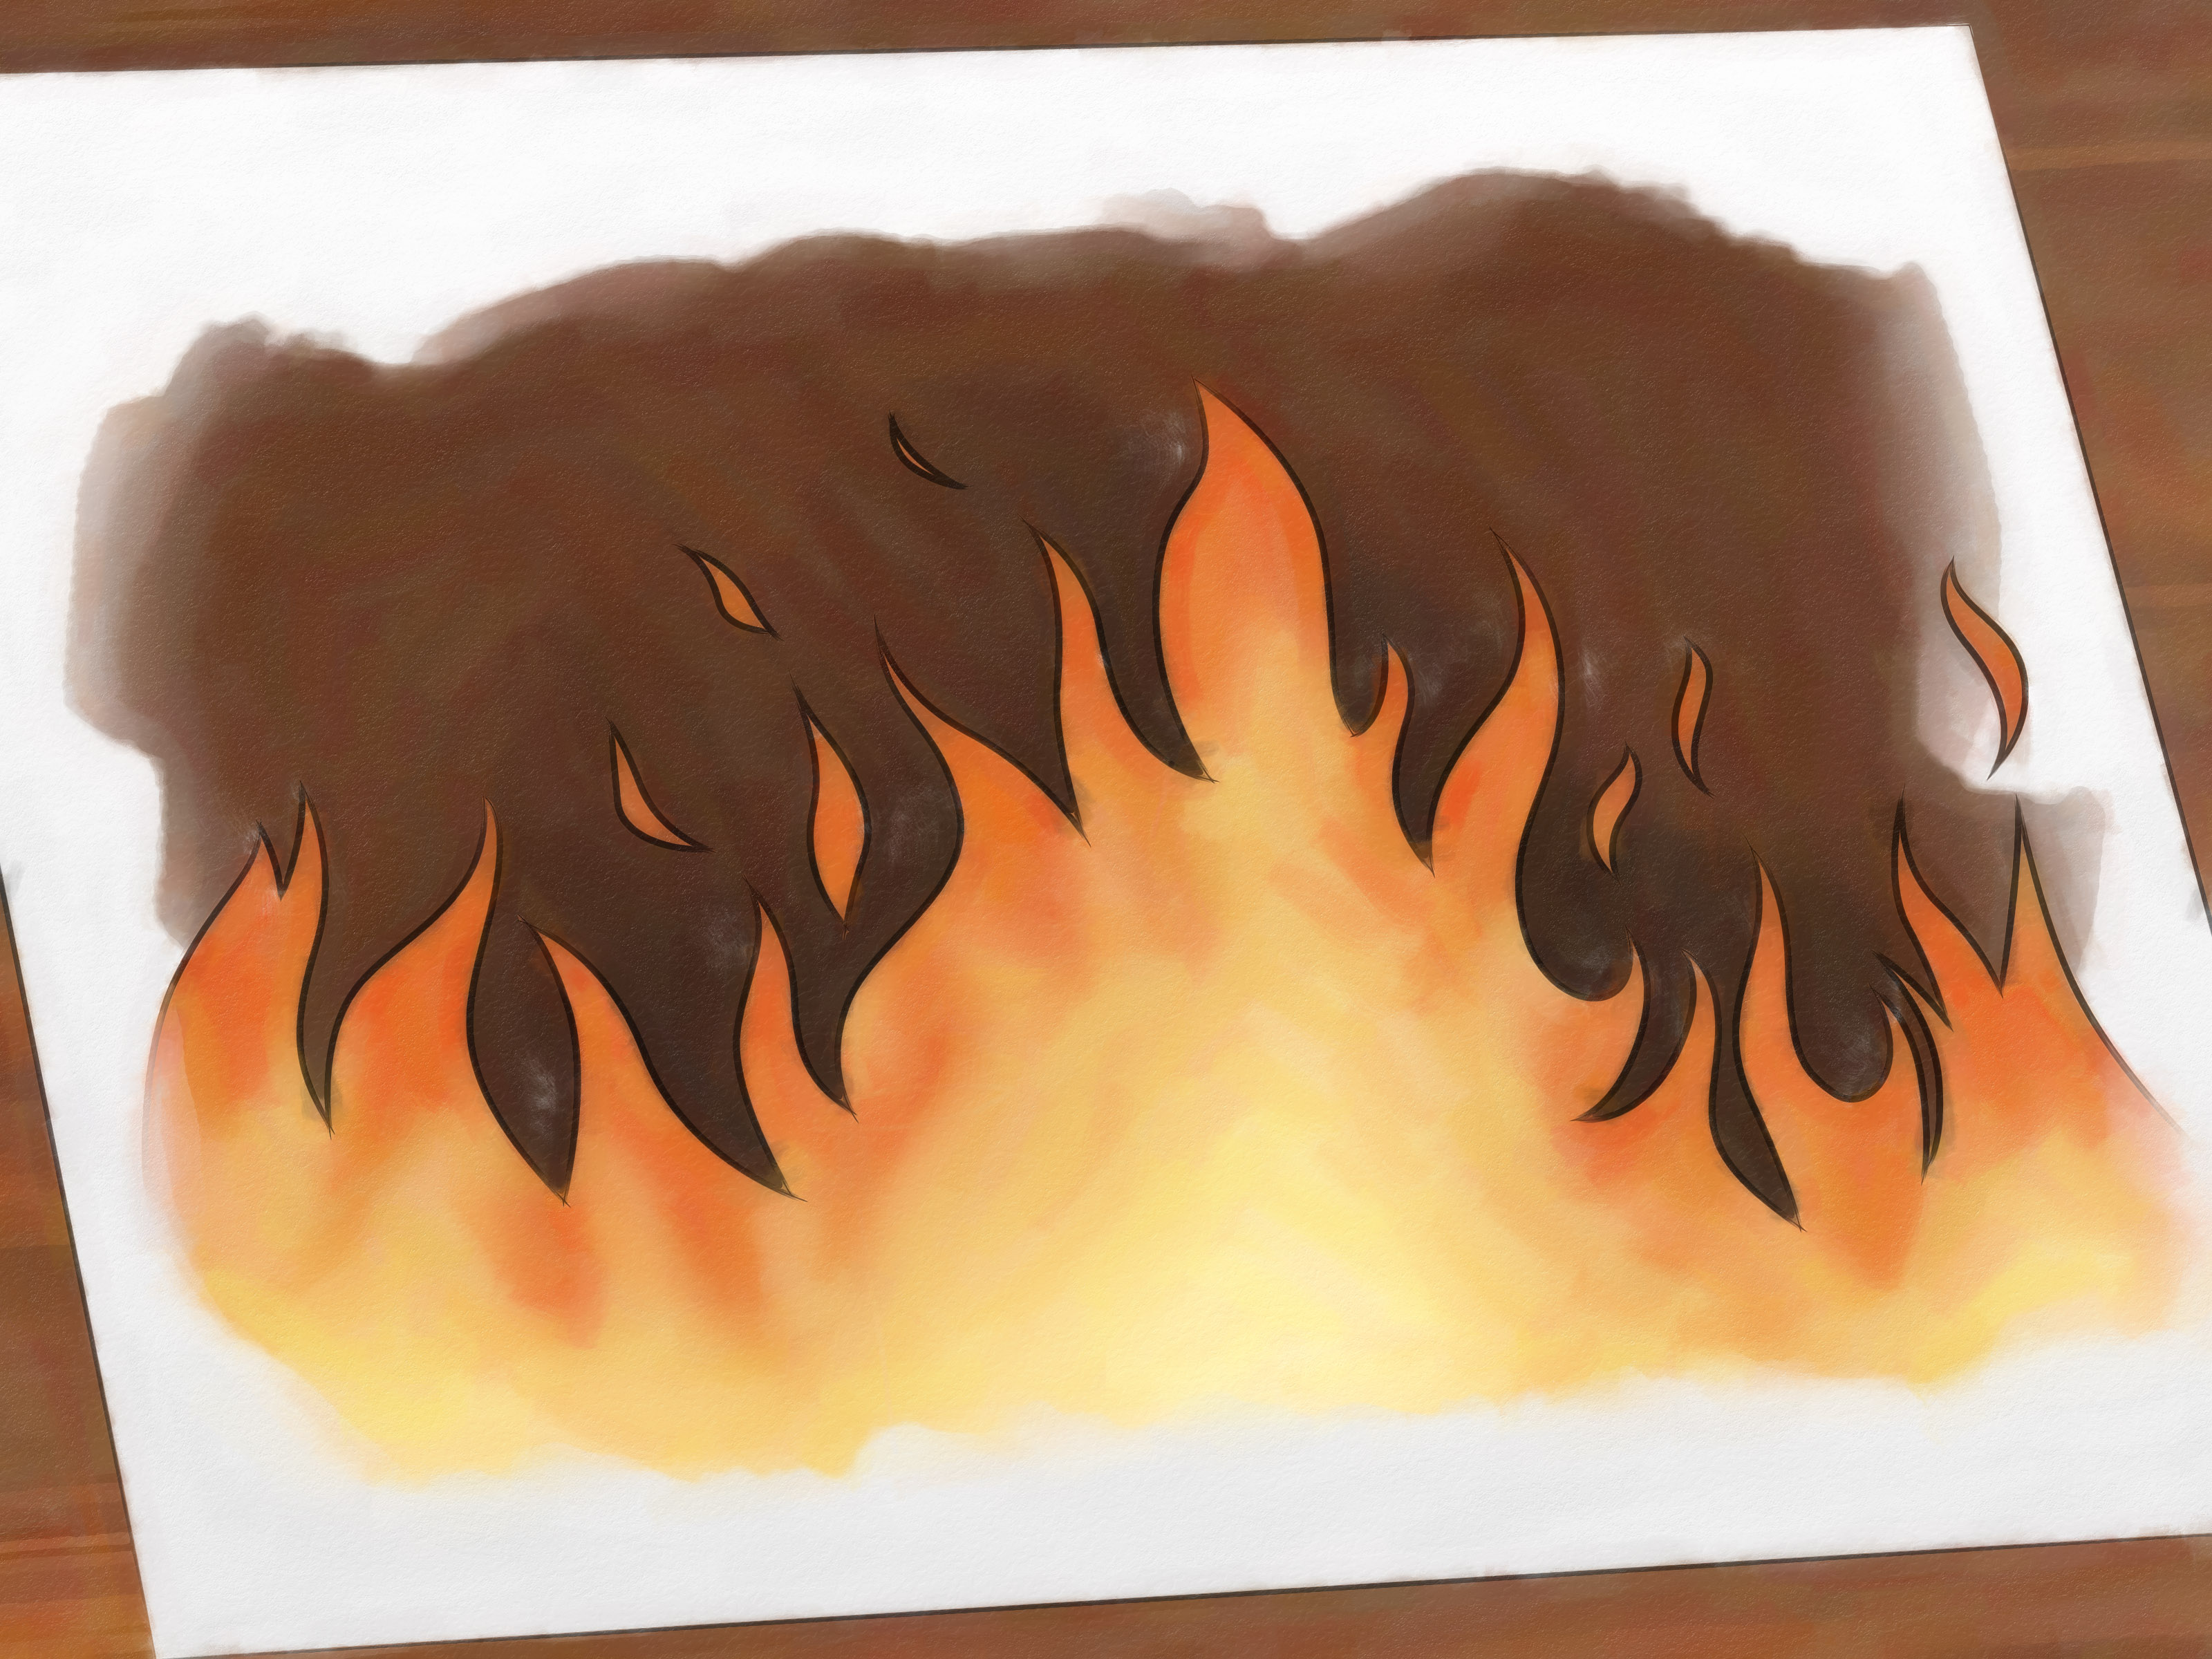 3200x2400 How To Draw Flames 14 Steps (With Pictures)